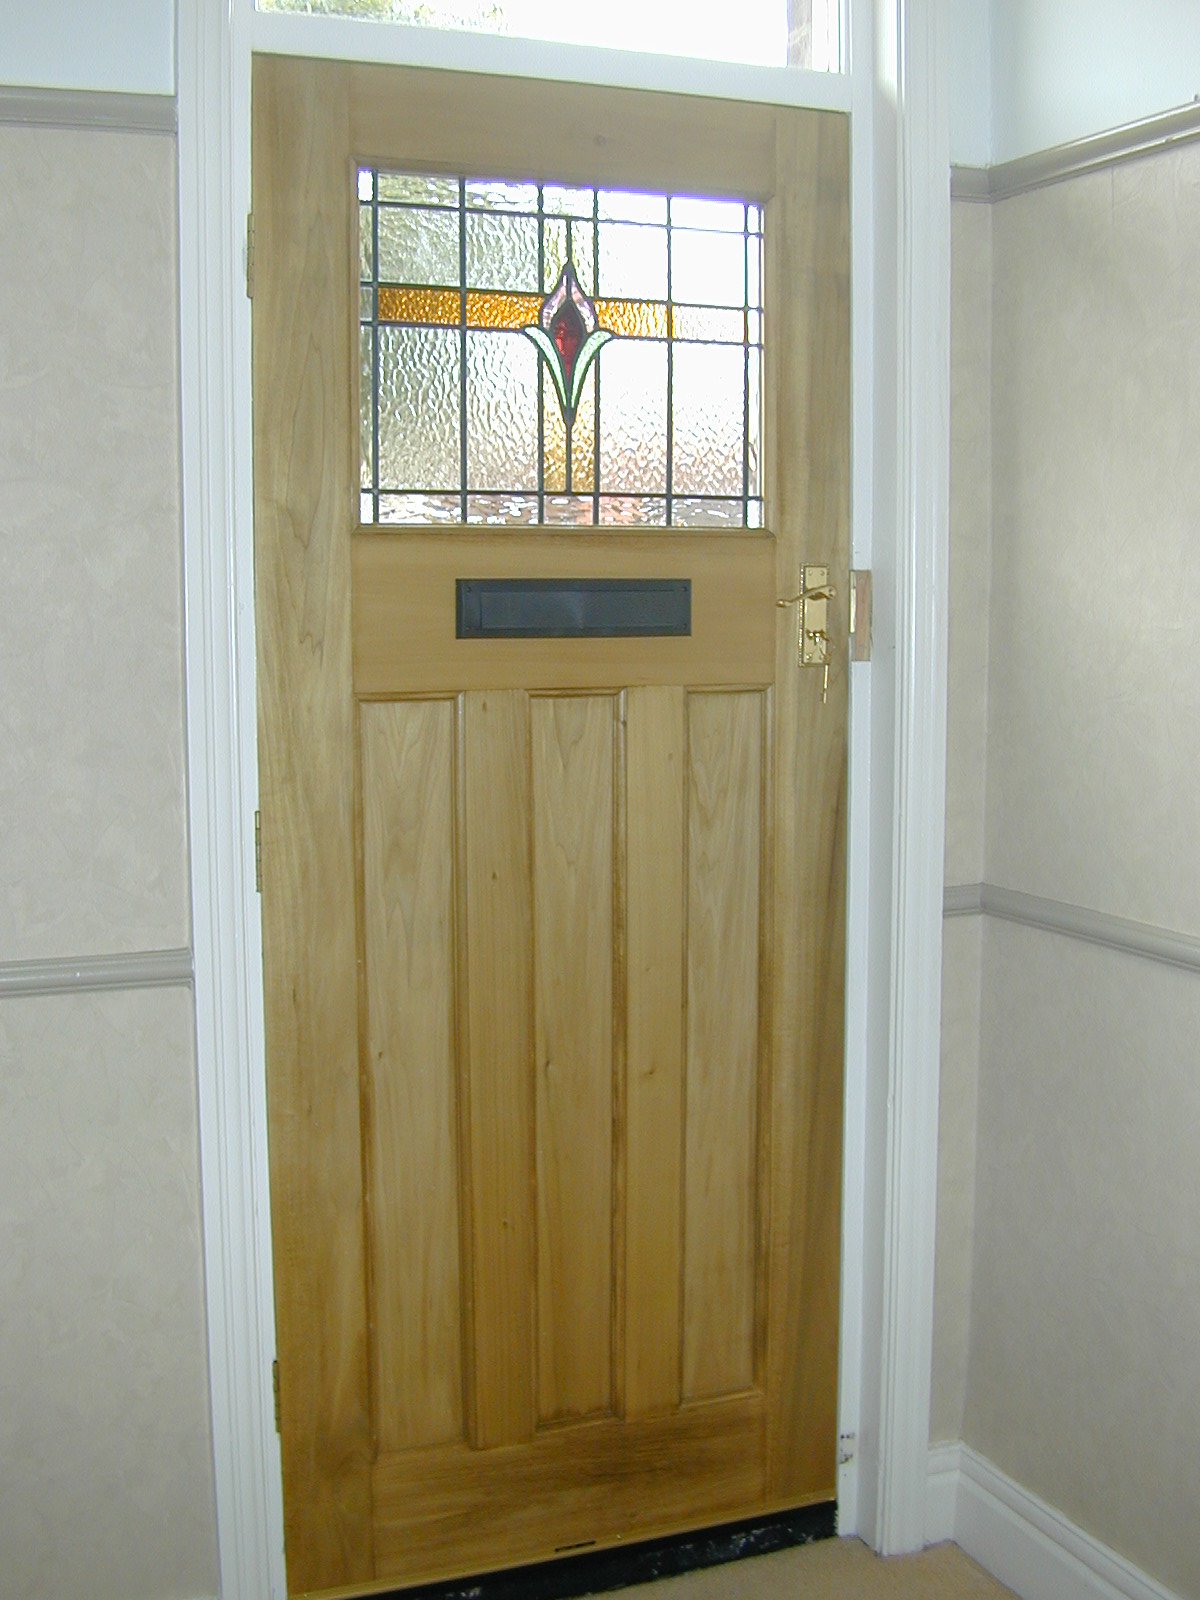 1930s door classic 1930s 231 2 for 1930s front door styles